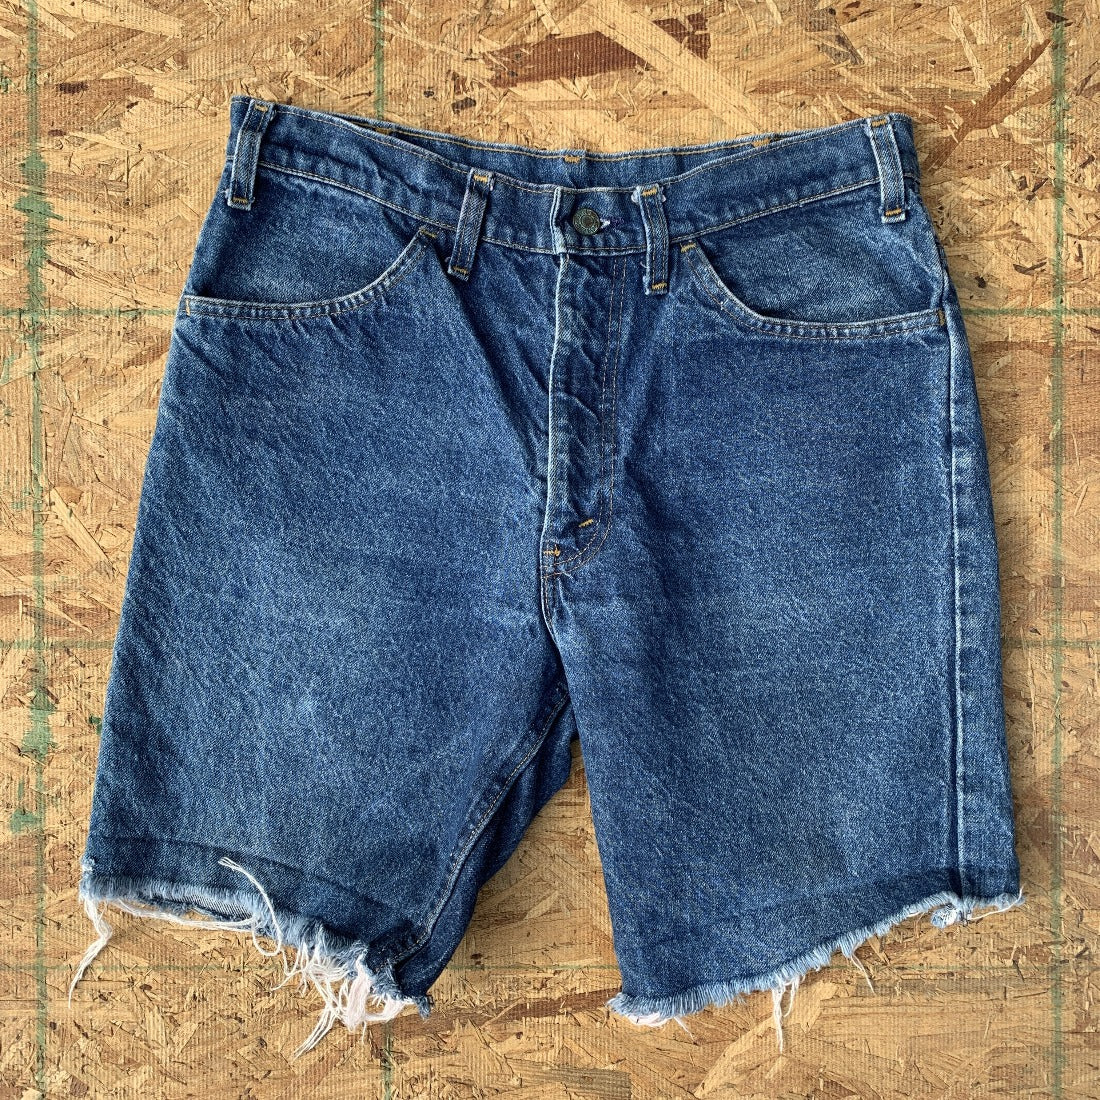 70s Levi's Vintage Indigo Wash Denim Cutoff Shorts Orange Tab | 36